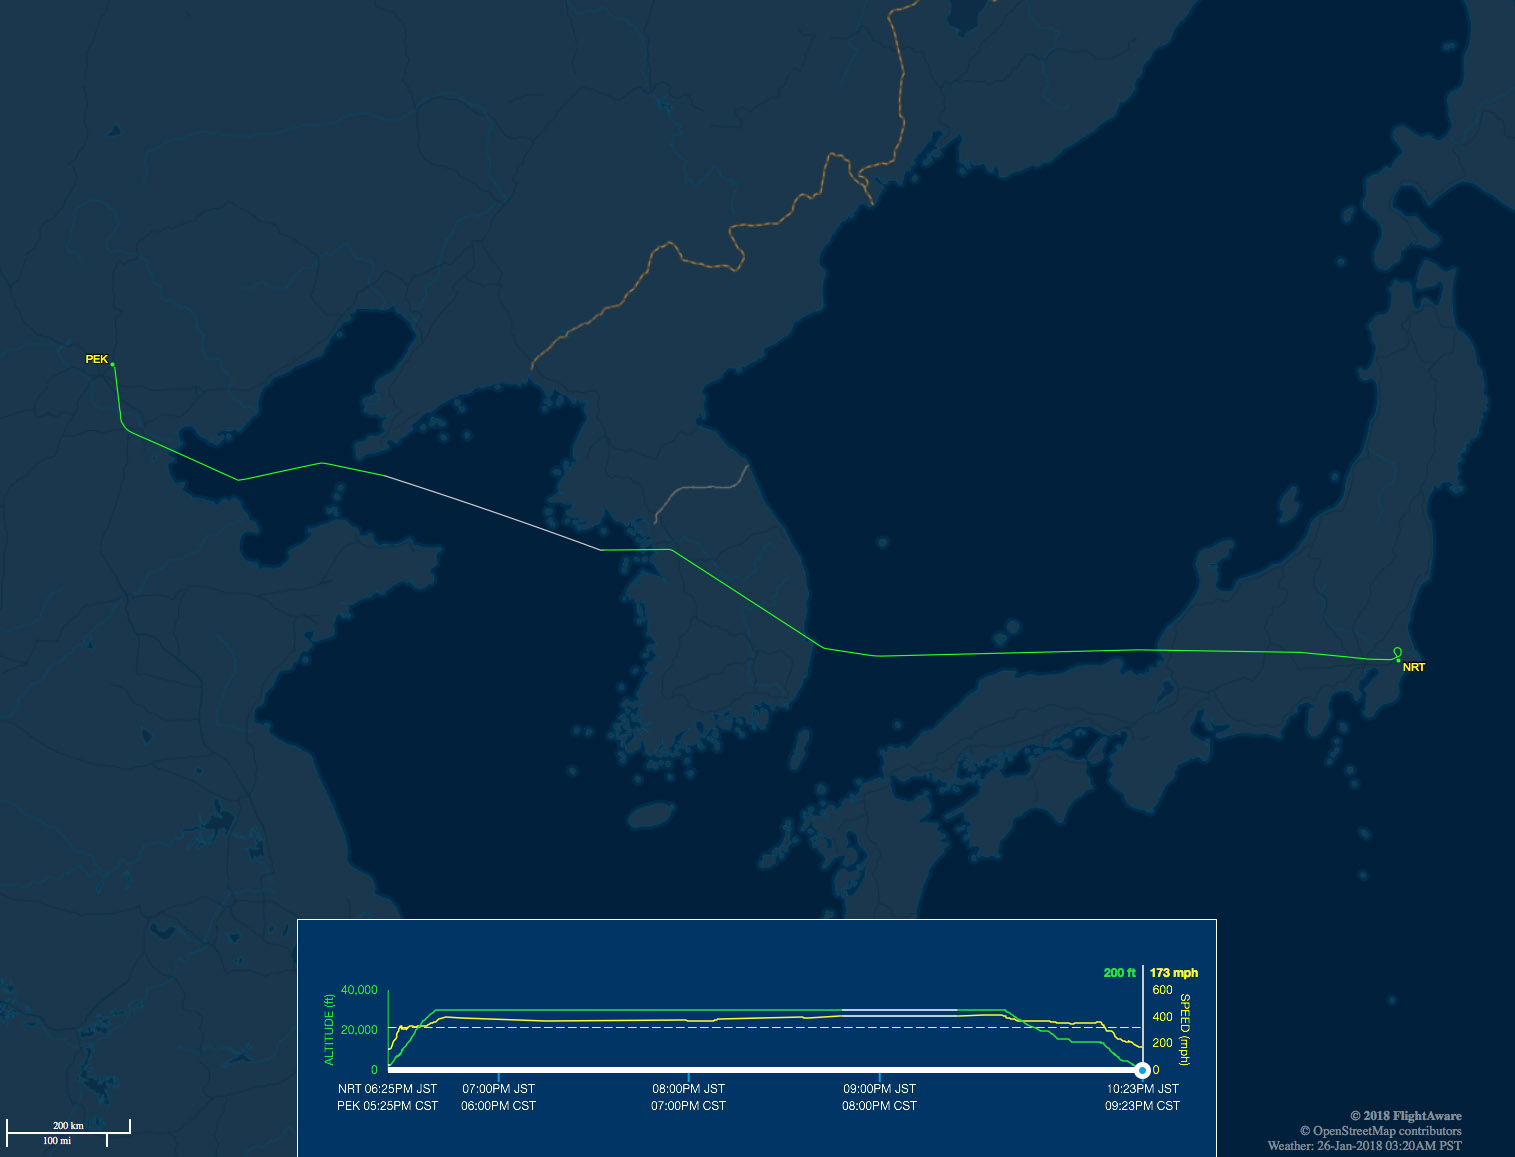 NRT to PEK route map